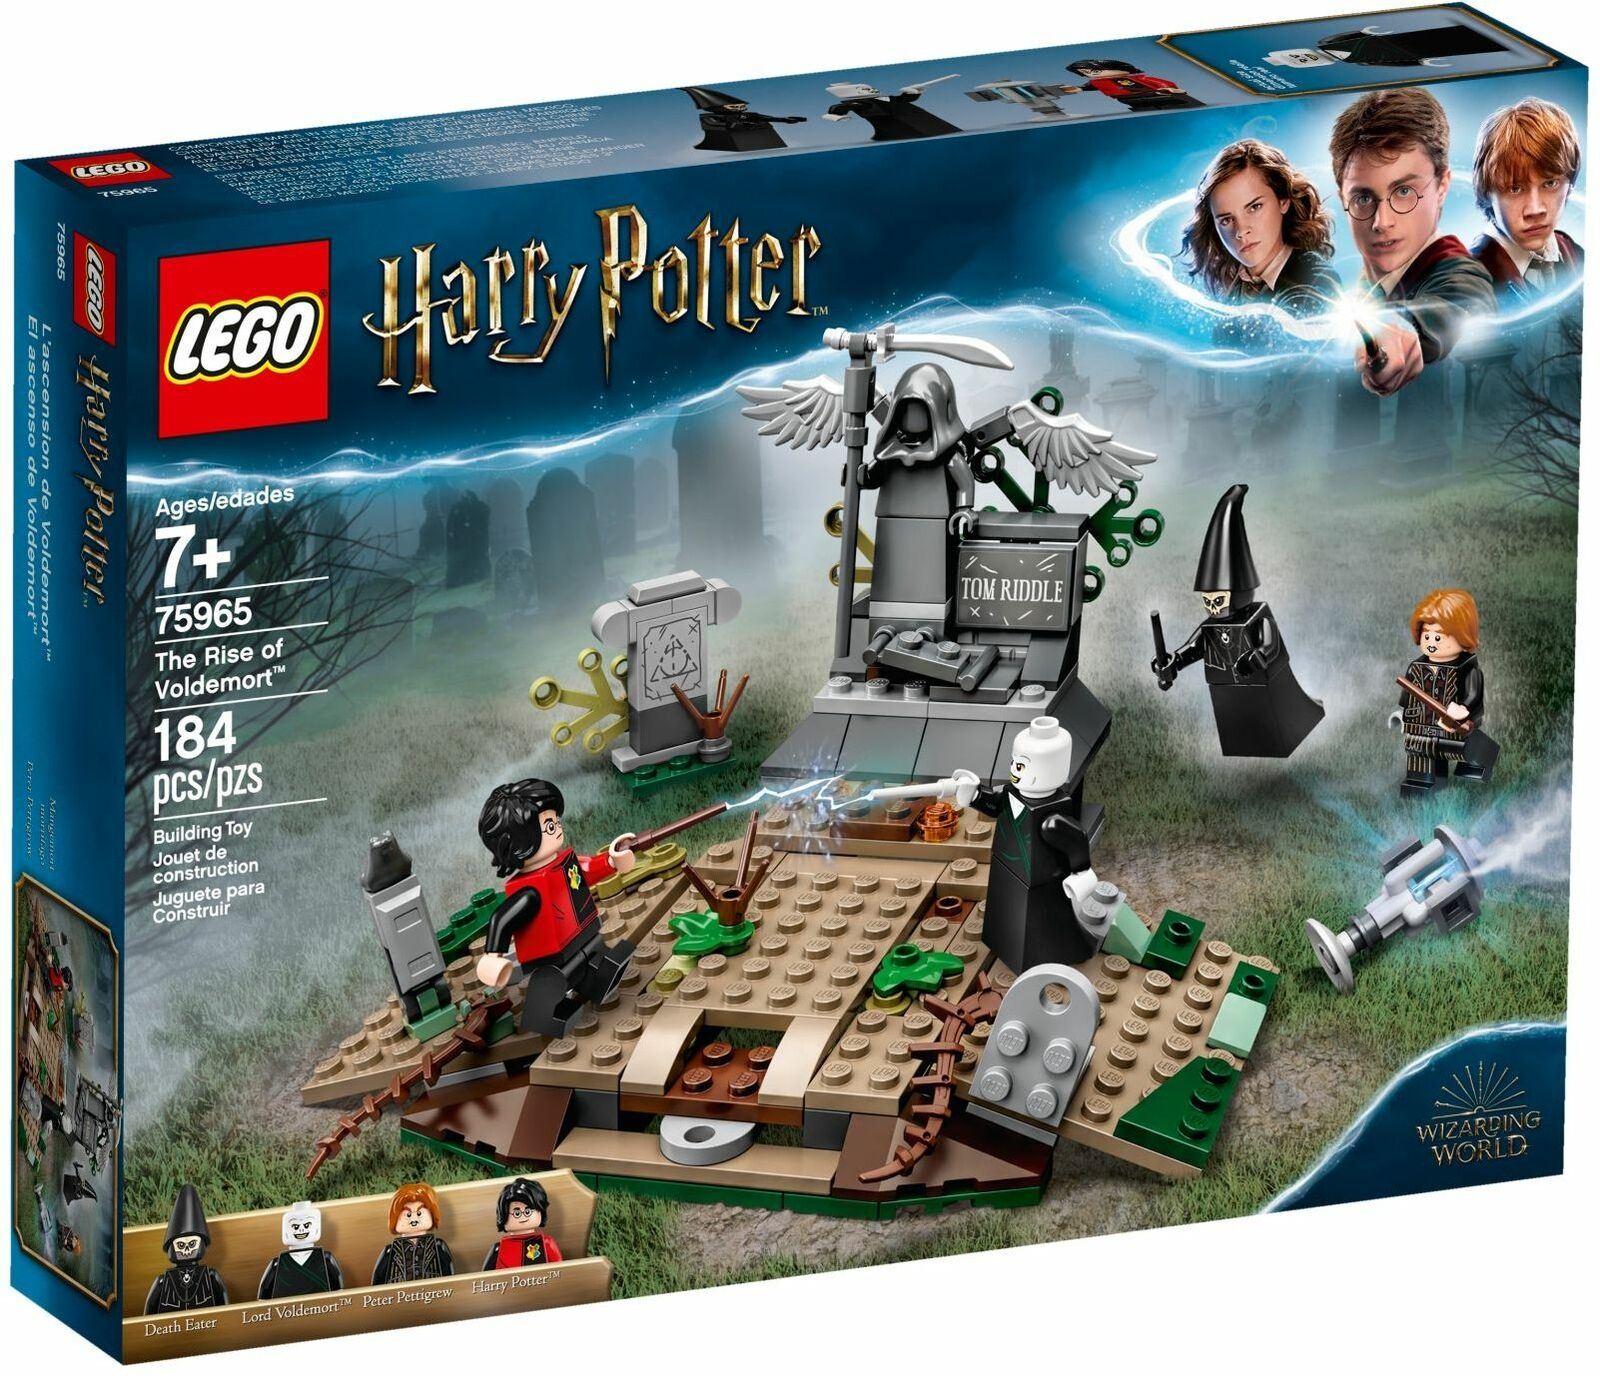 LEGO Harry Potter 75965 The Rise of Voldemort Libre  SHIPPING  vente au rabais